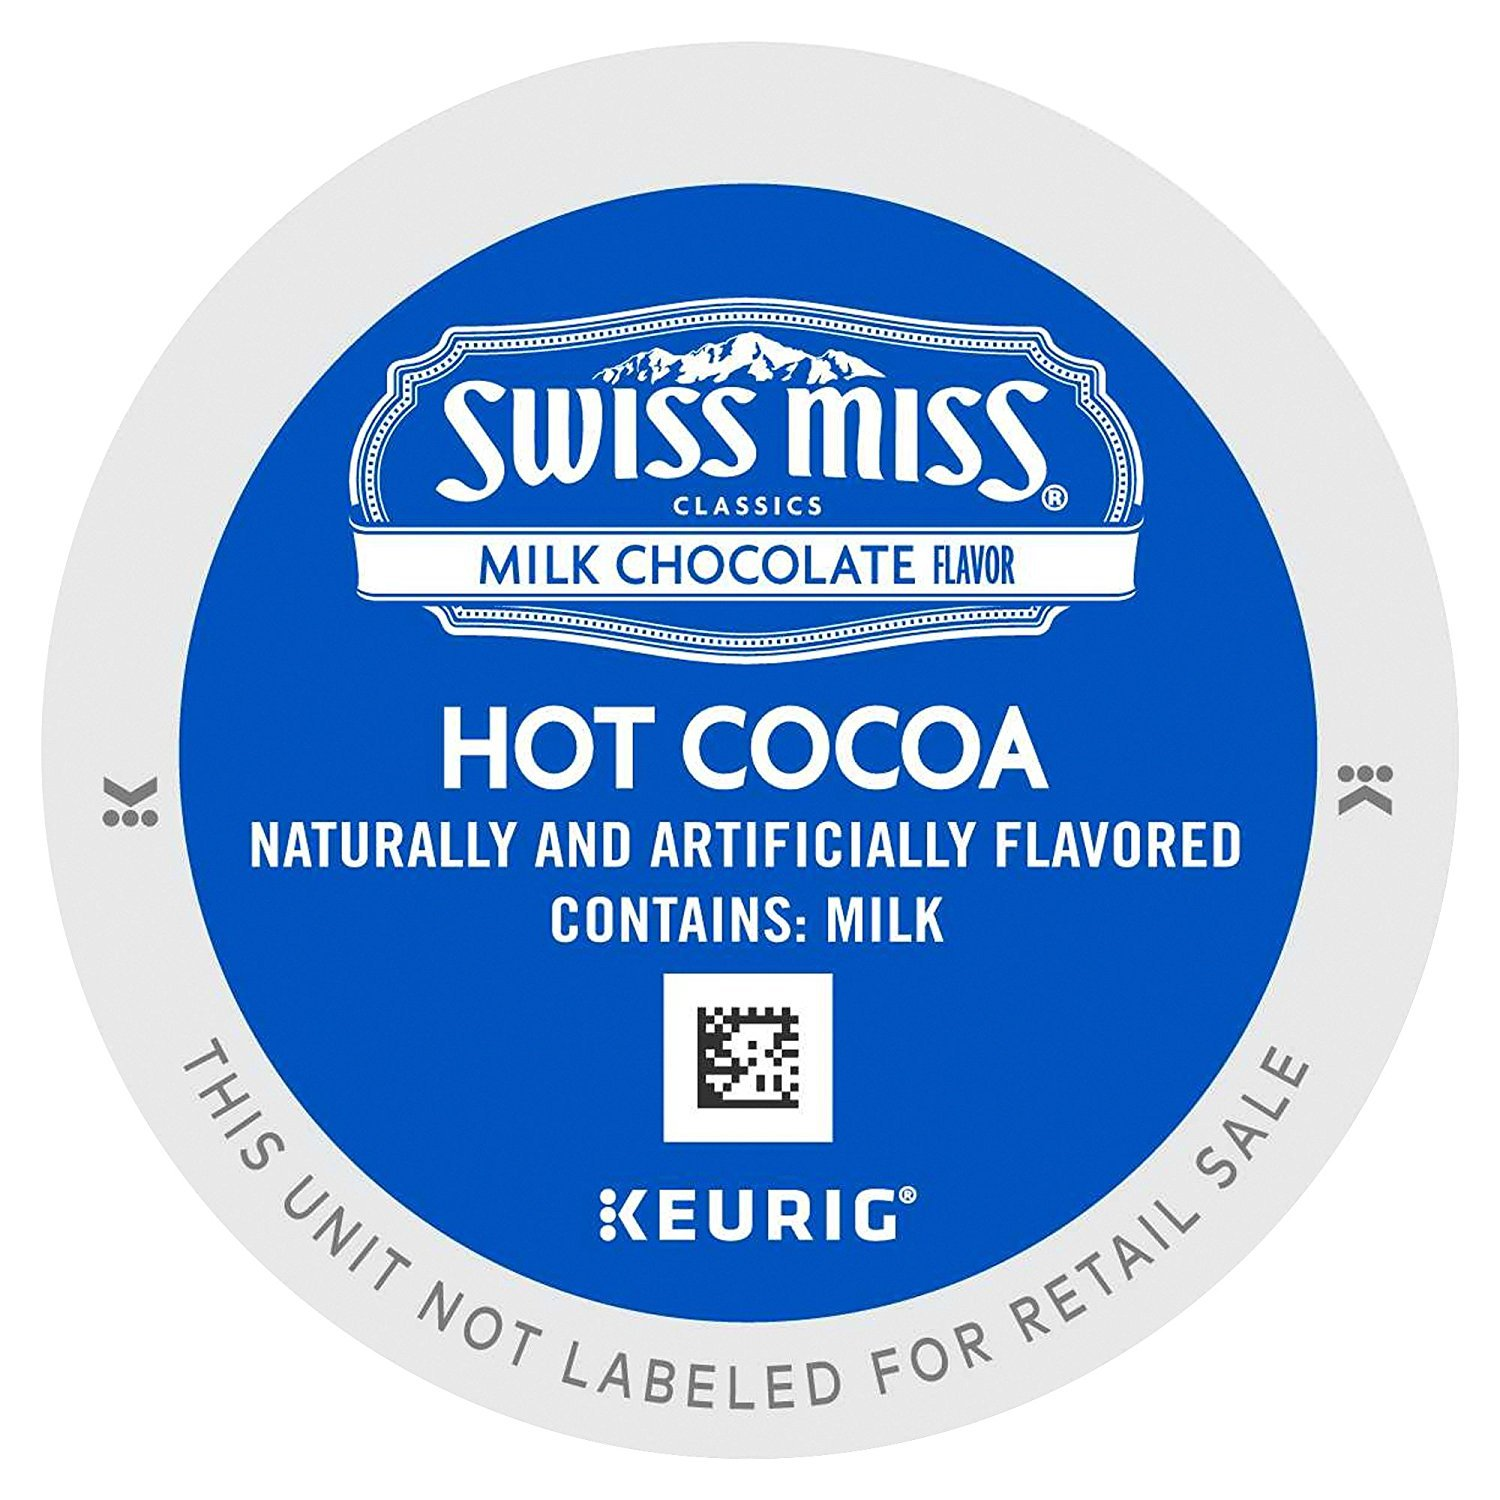 Swiss Miss Milk Chocolate Hot Cocoa, 60 Count by Swiss Miss